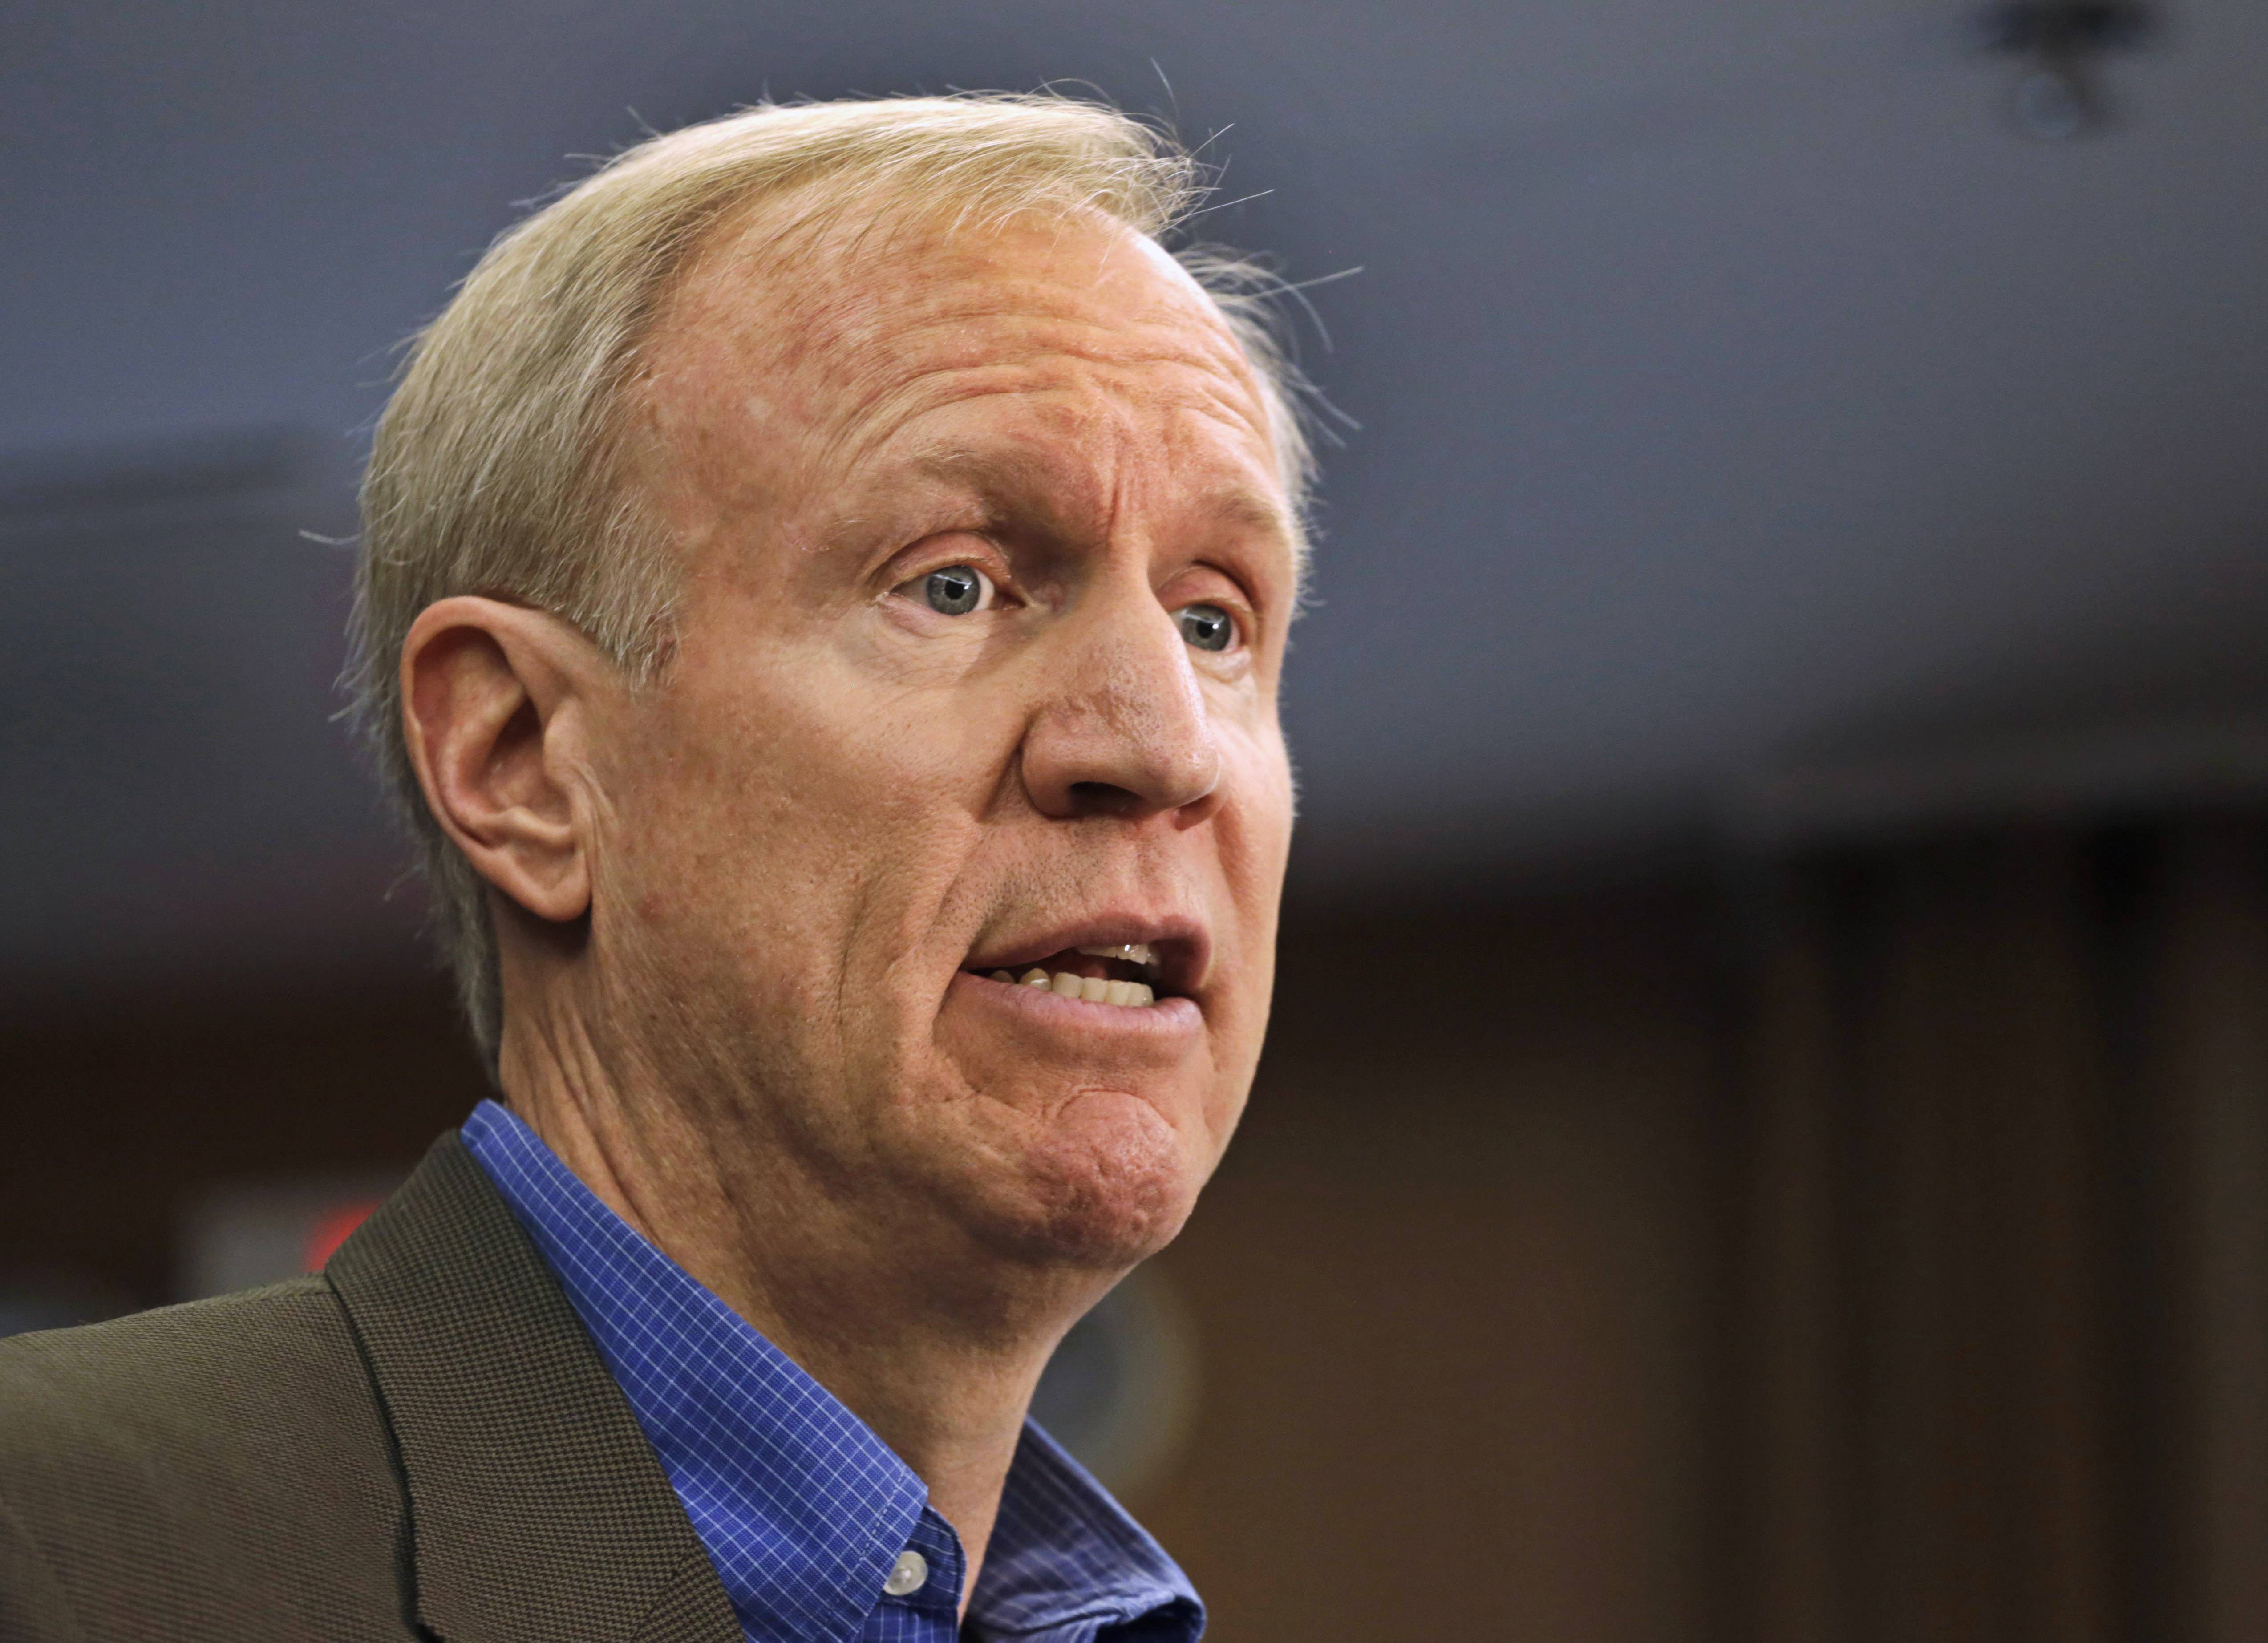 Republican gubernatorial candidate Bruce Rauner speaks at a June news conference in Chicago. Rauner funneled part of his wealth to a Caribbean territory long considered a tax haven, according to a report. None of the holdings involved expenditures of Rauner's personal funds, spokesman Mike Schrimpf said.